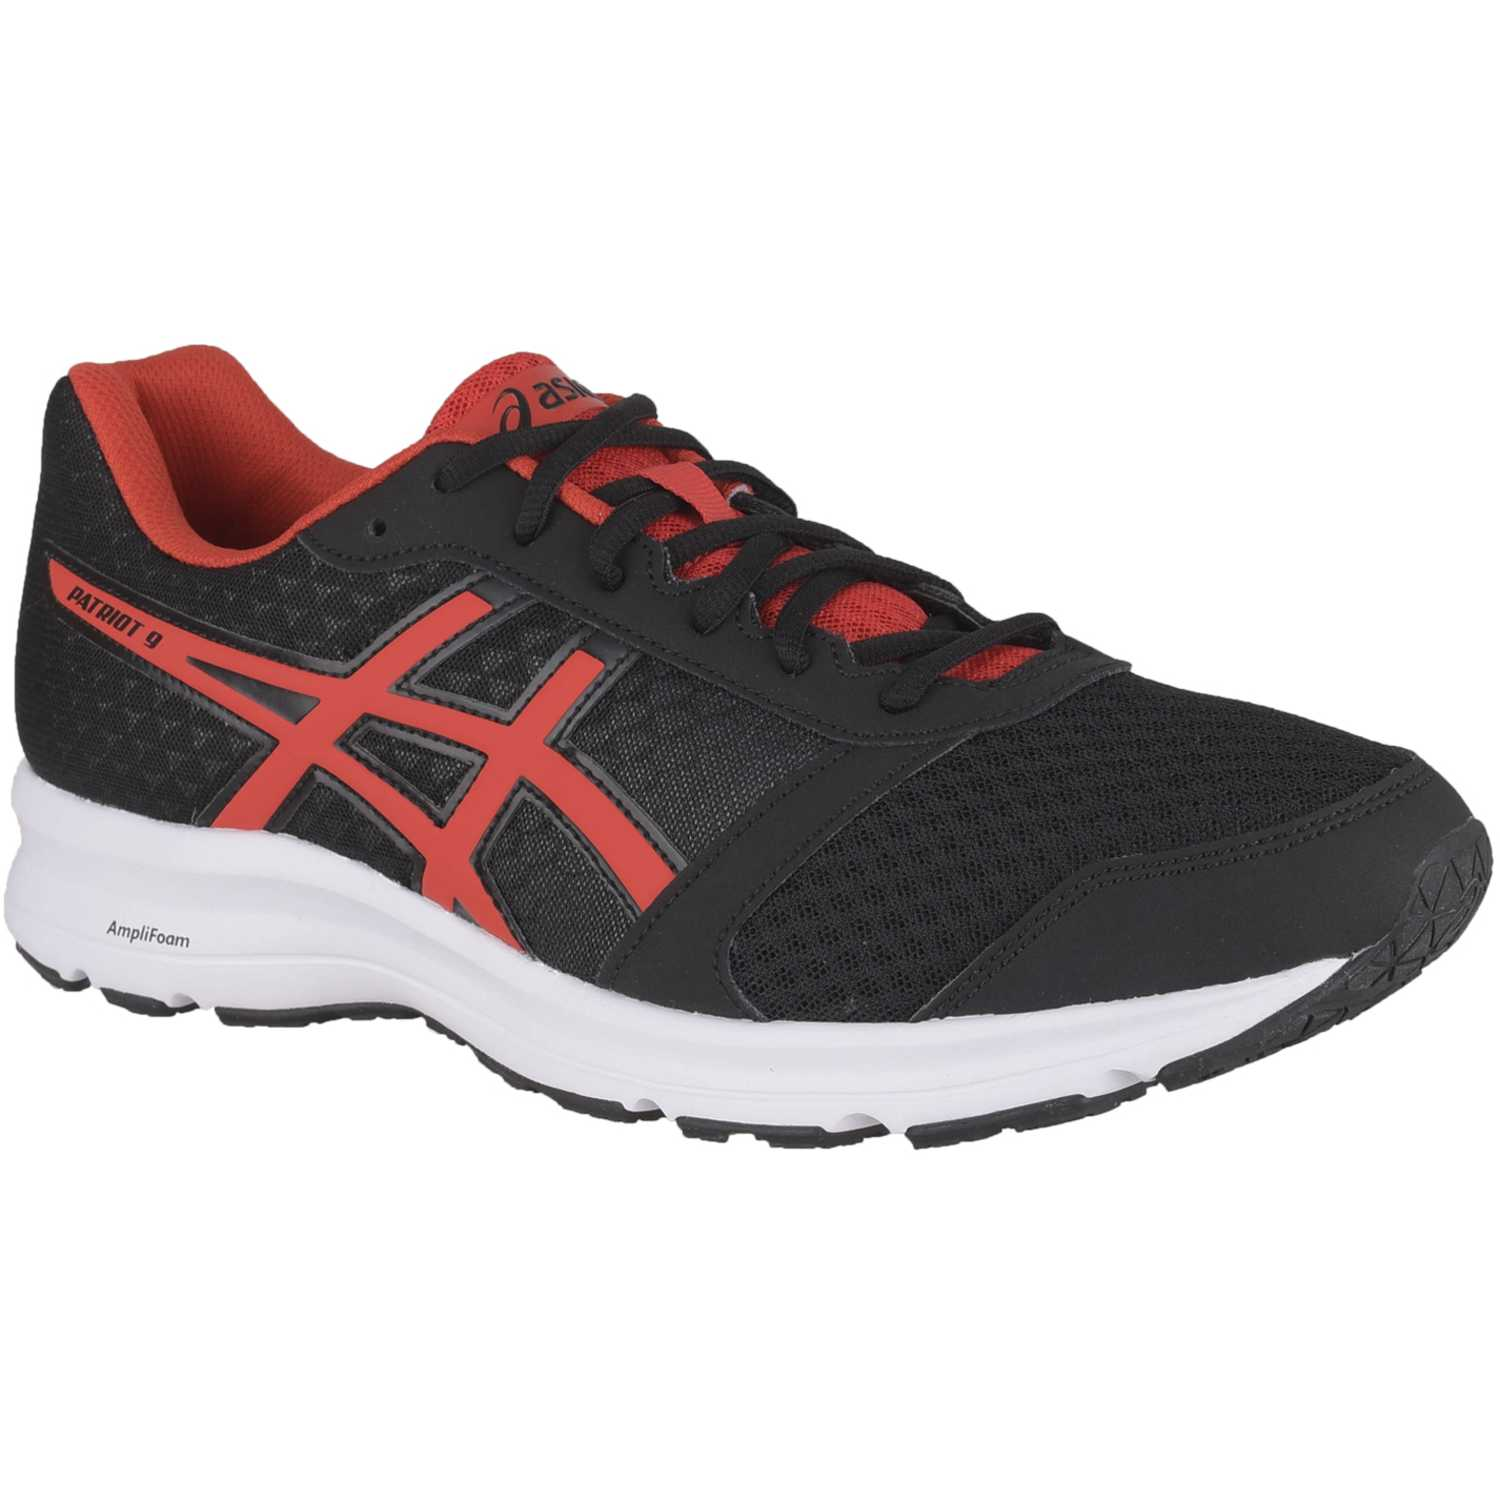 Asics patriot 9 black fiery red whit Negro / rojo Hombres